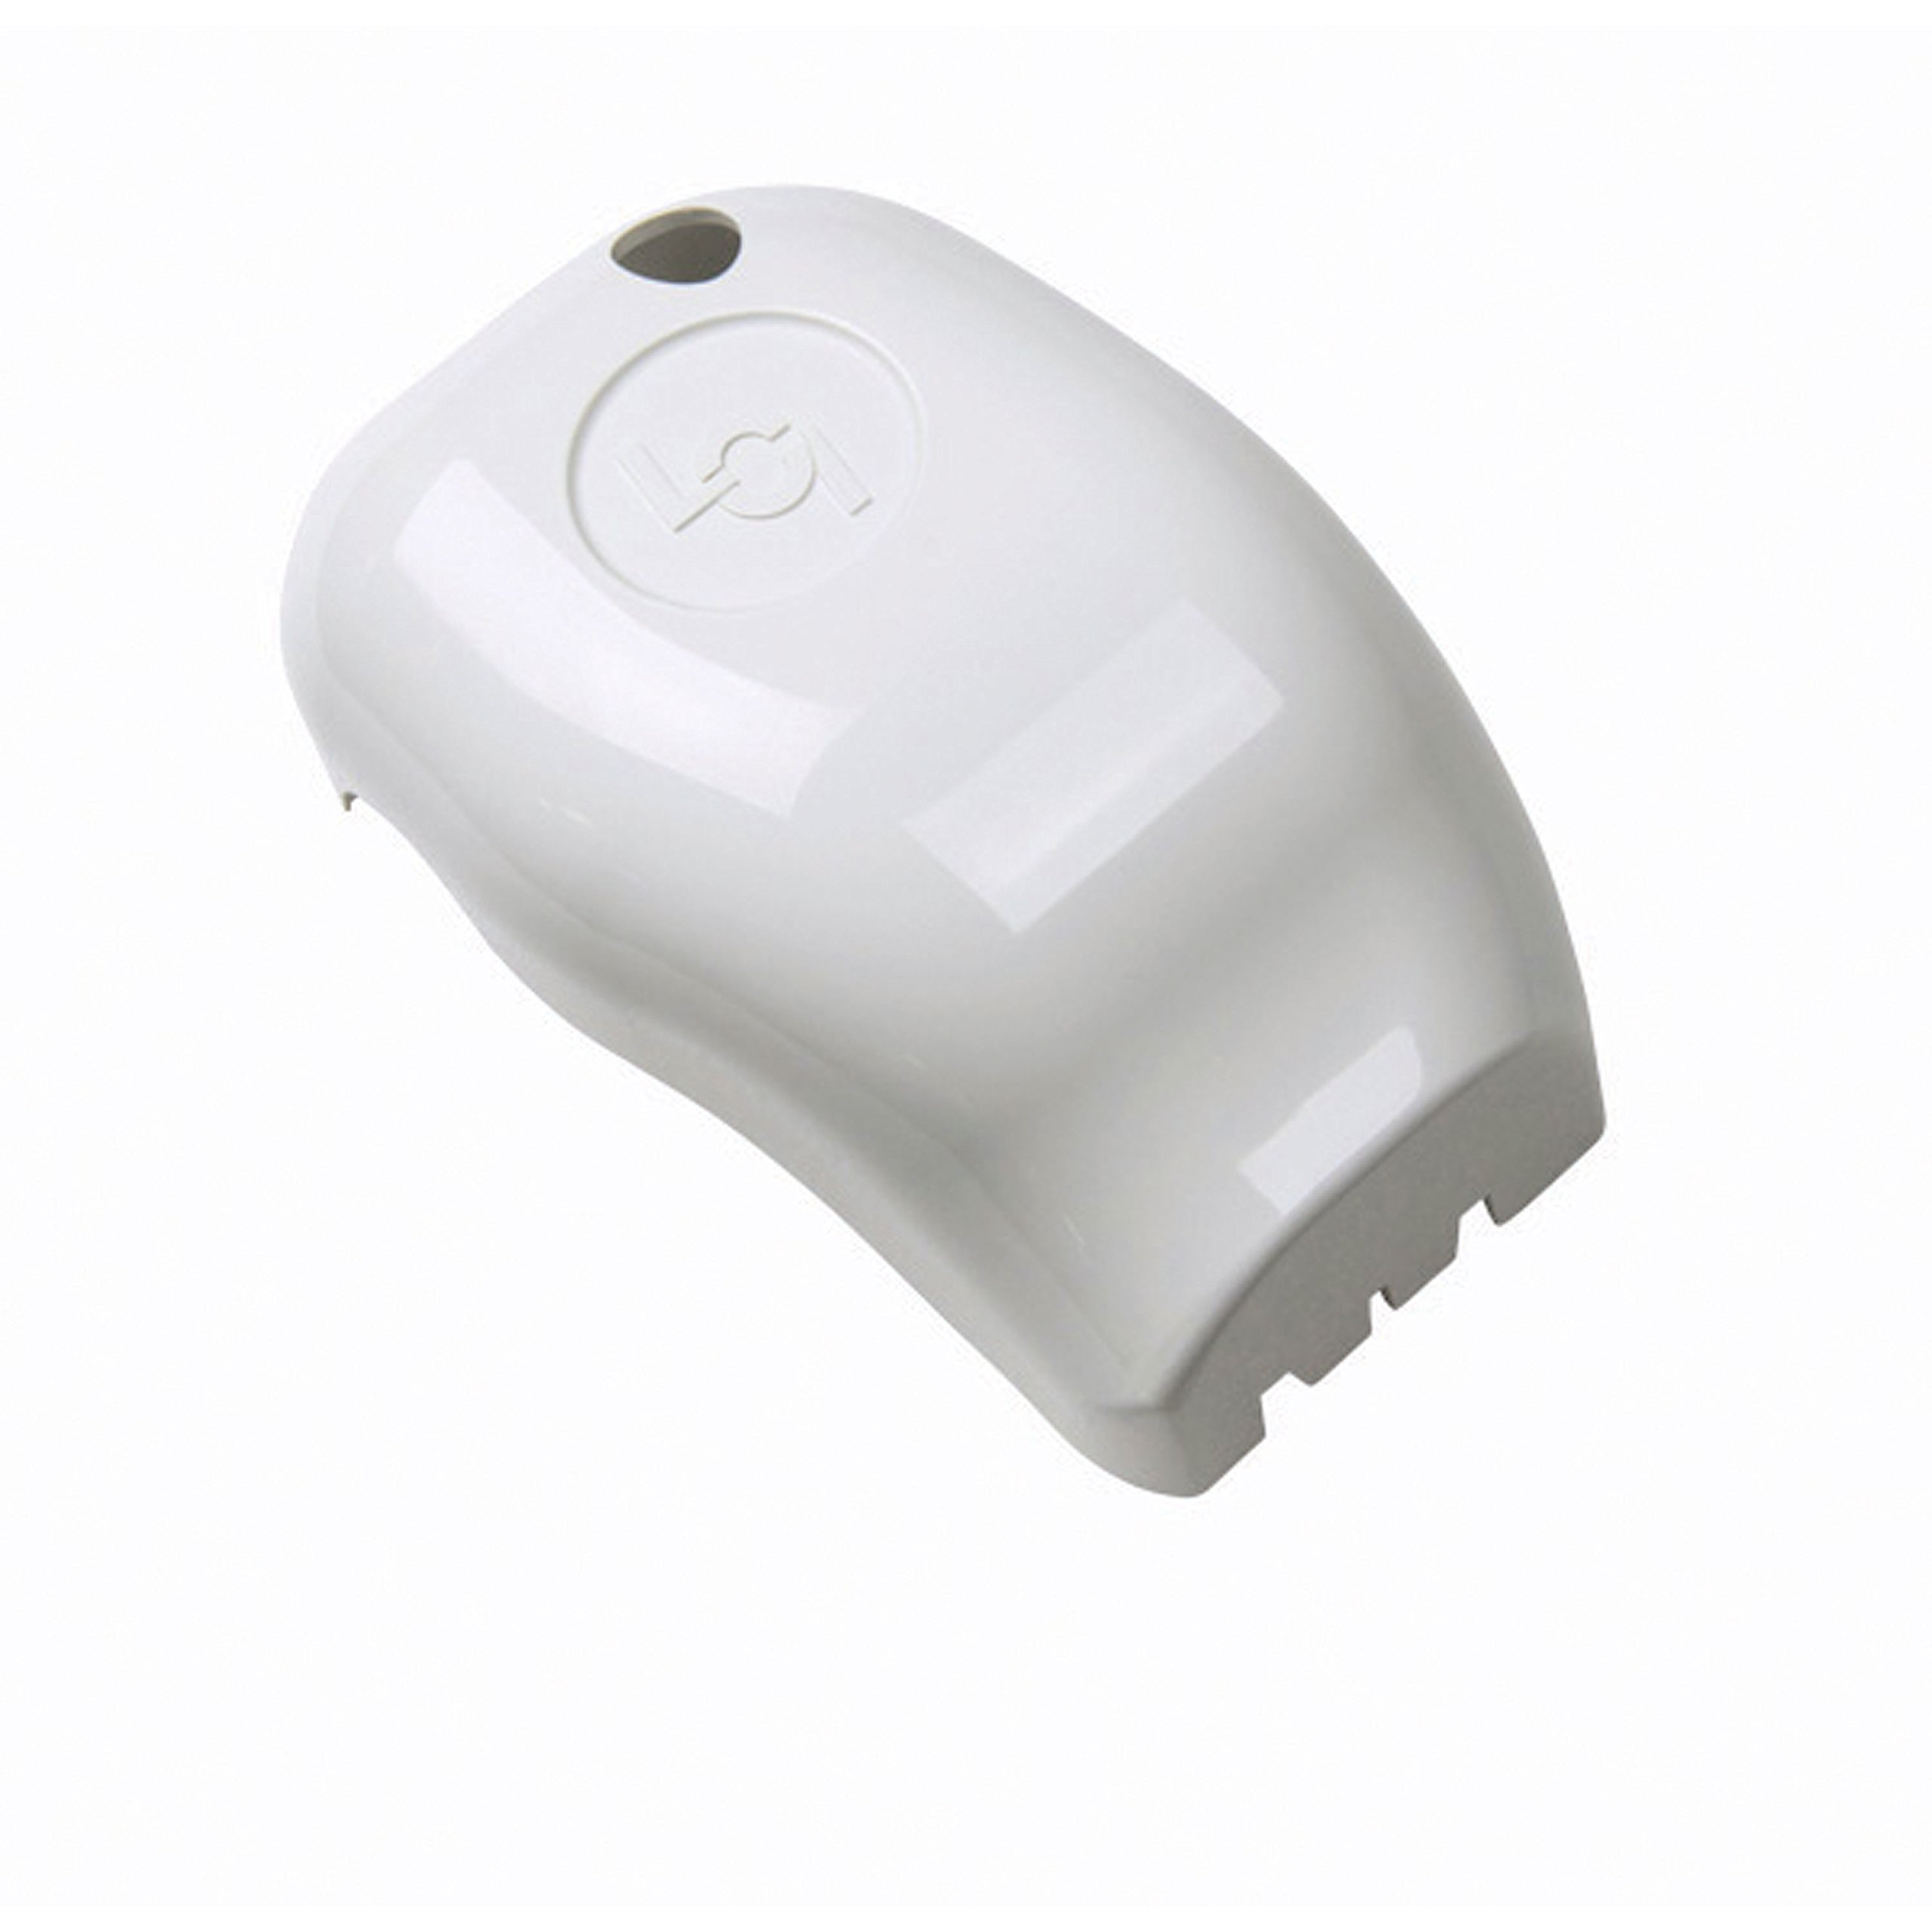 Solera 289557 Power and Manual Awning Plain Drive Head Front Cover, White by Solera